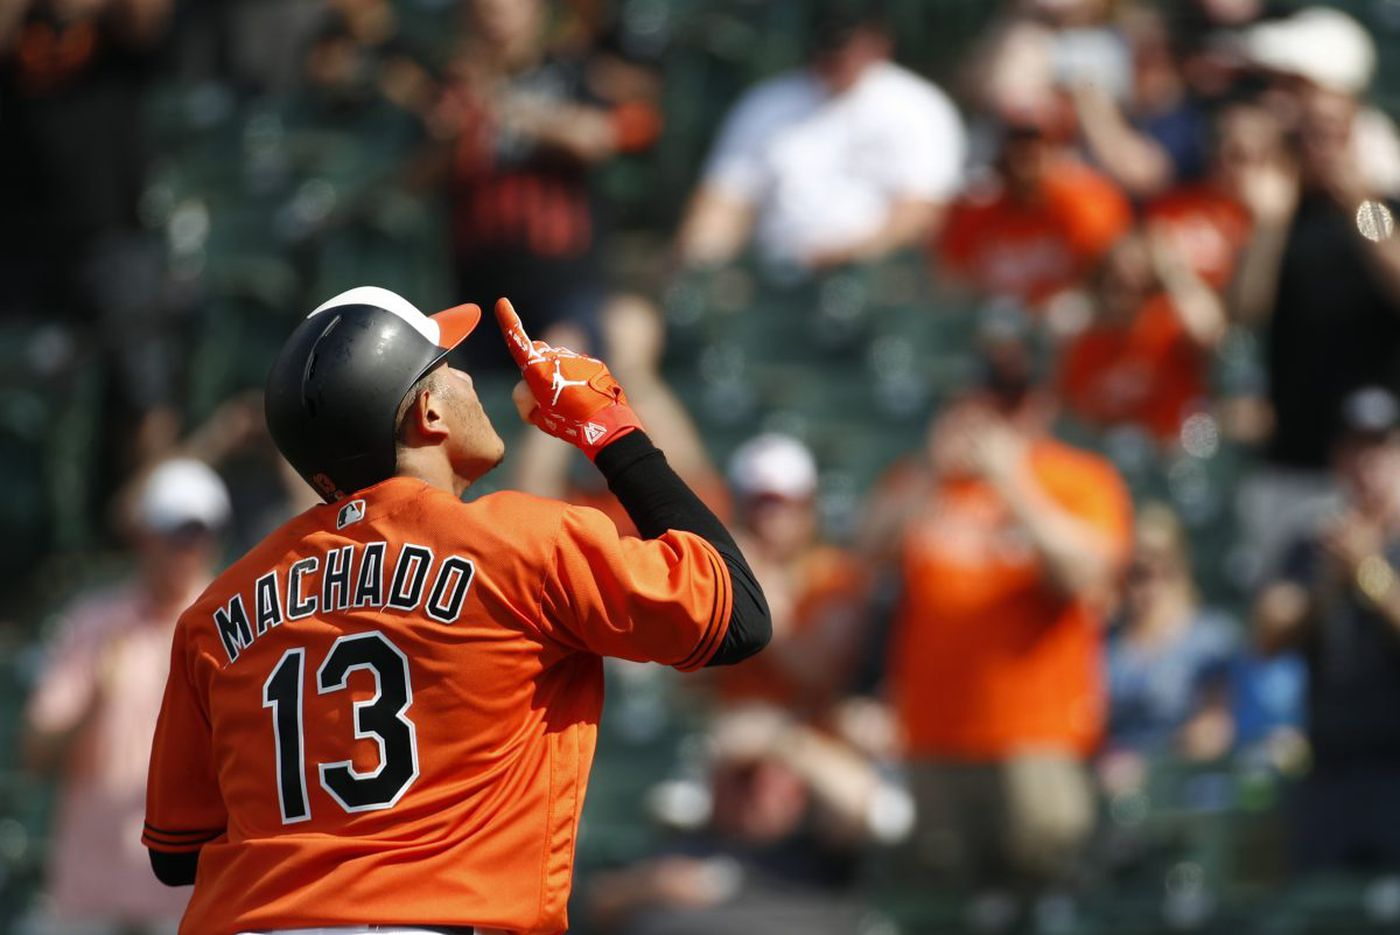 Manny Machado, soon-to-be free agent, has an 'awesome' bond to Phillies